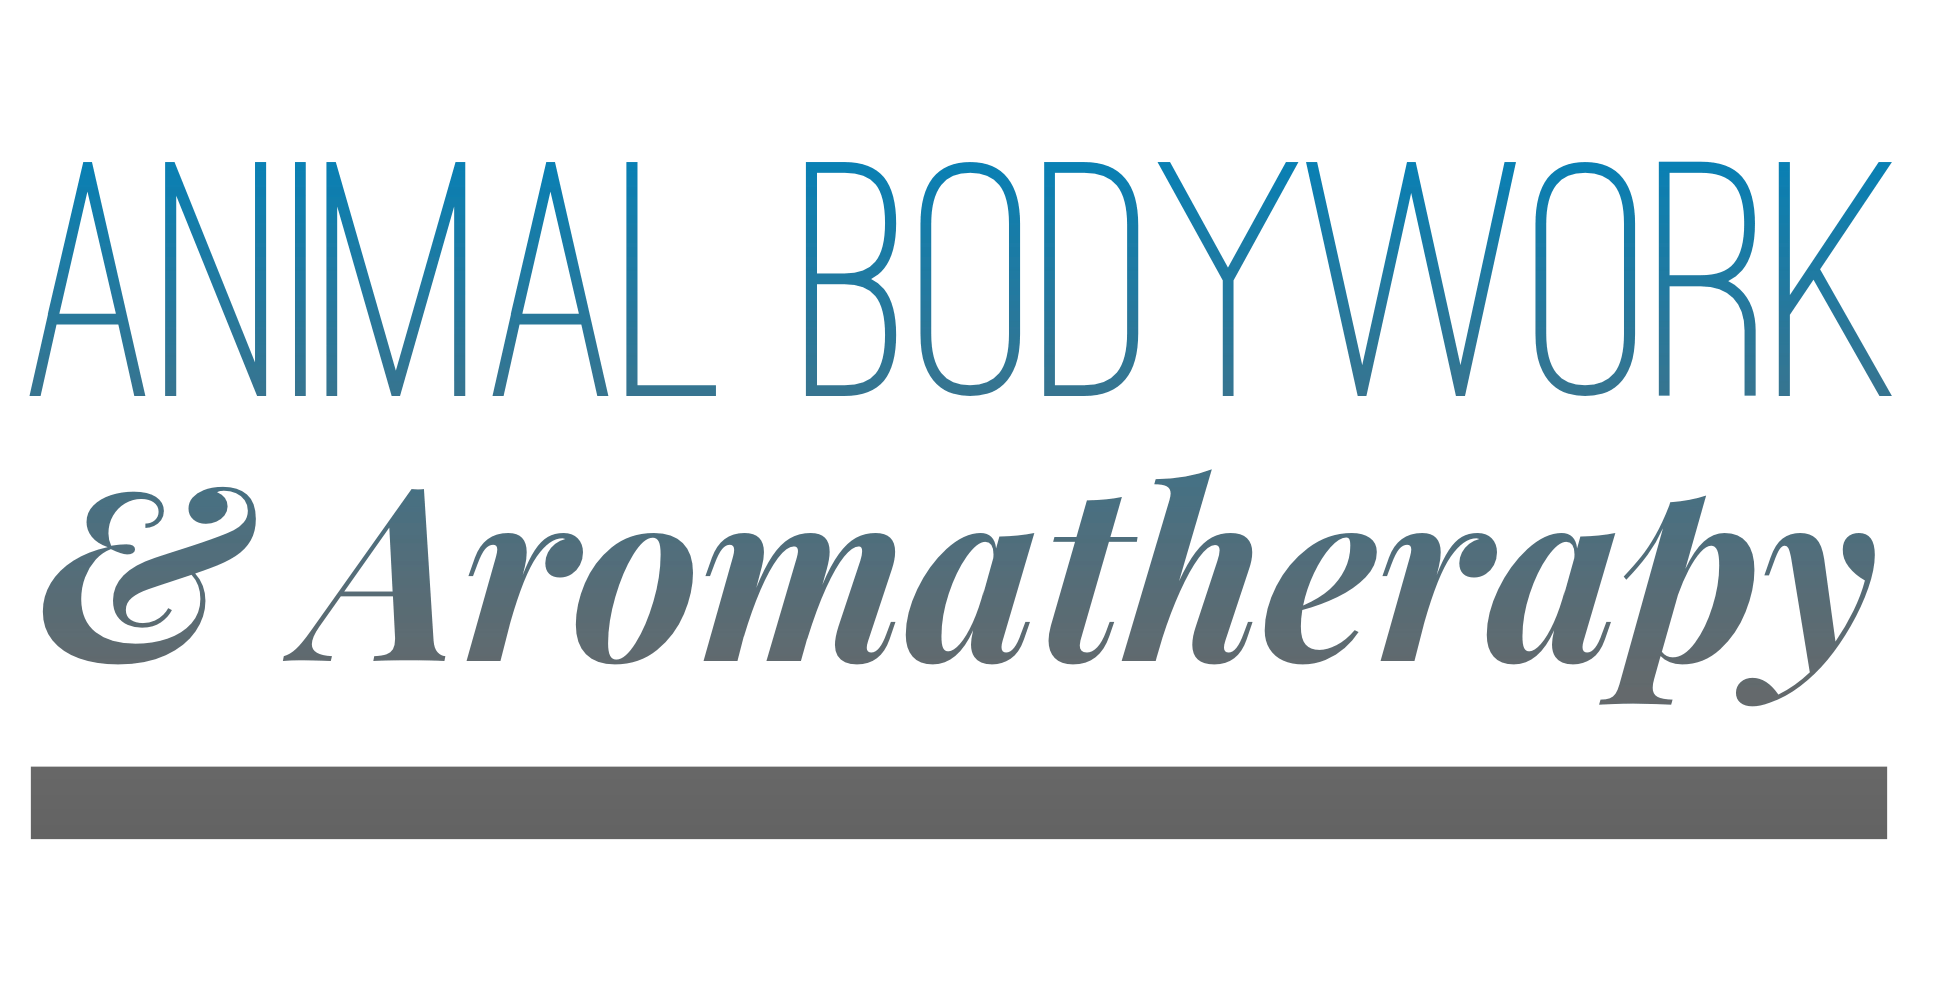 Animal Bodywork and Aromatherapy NJ